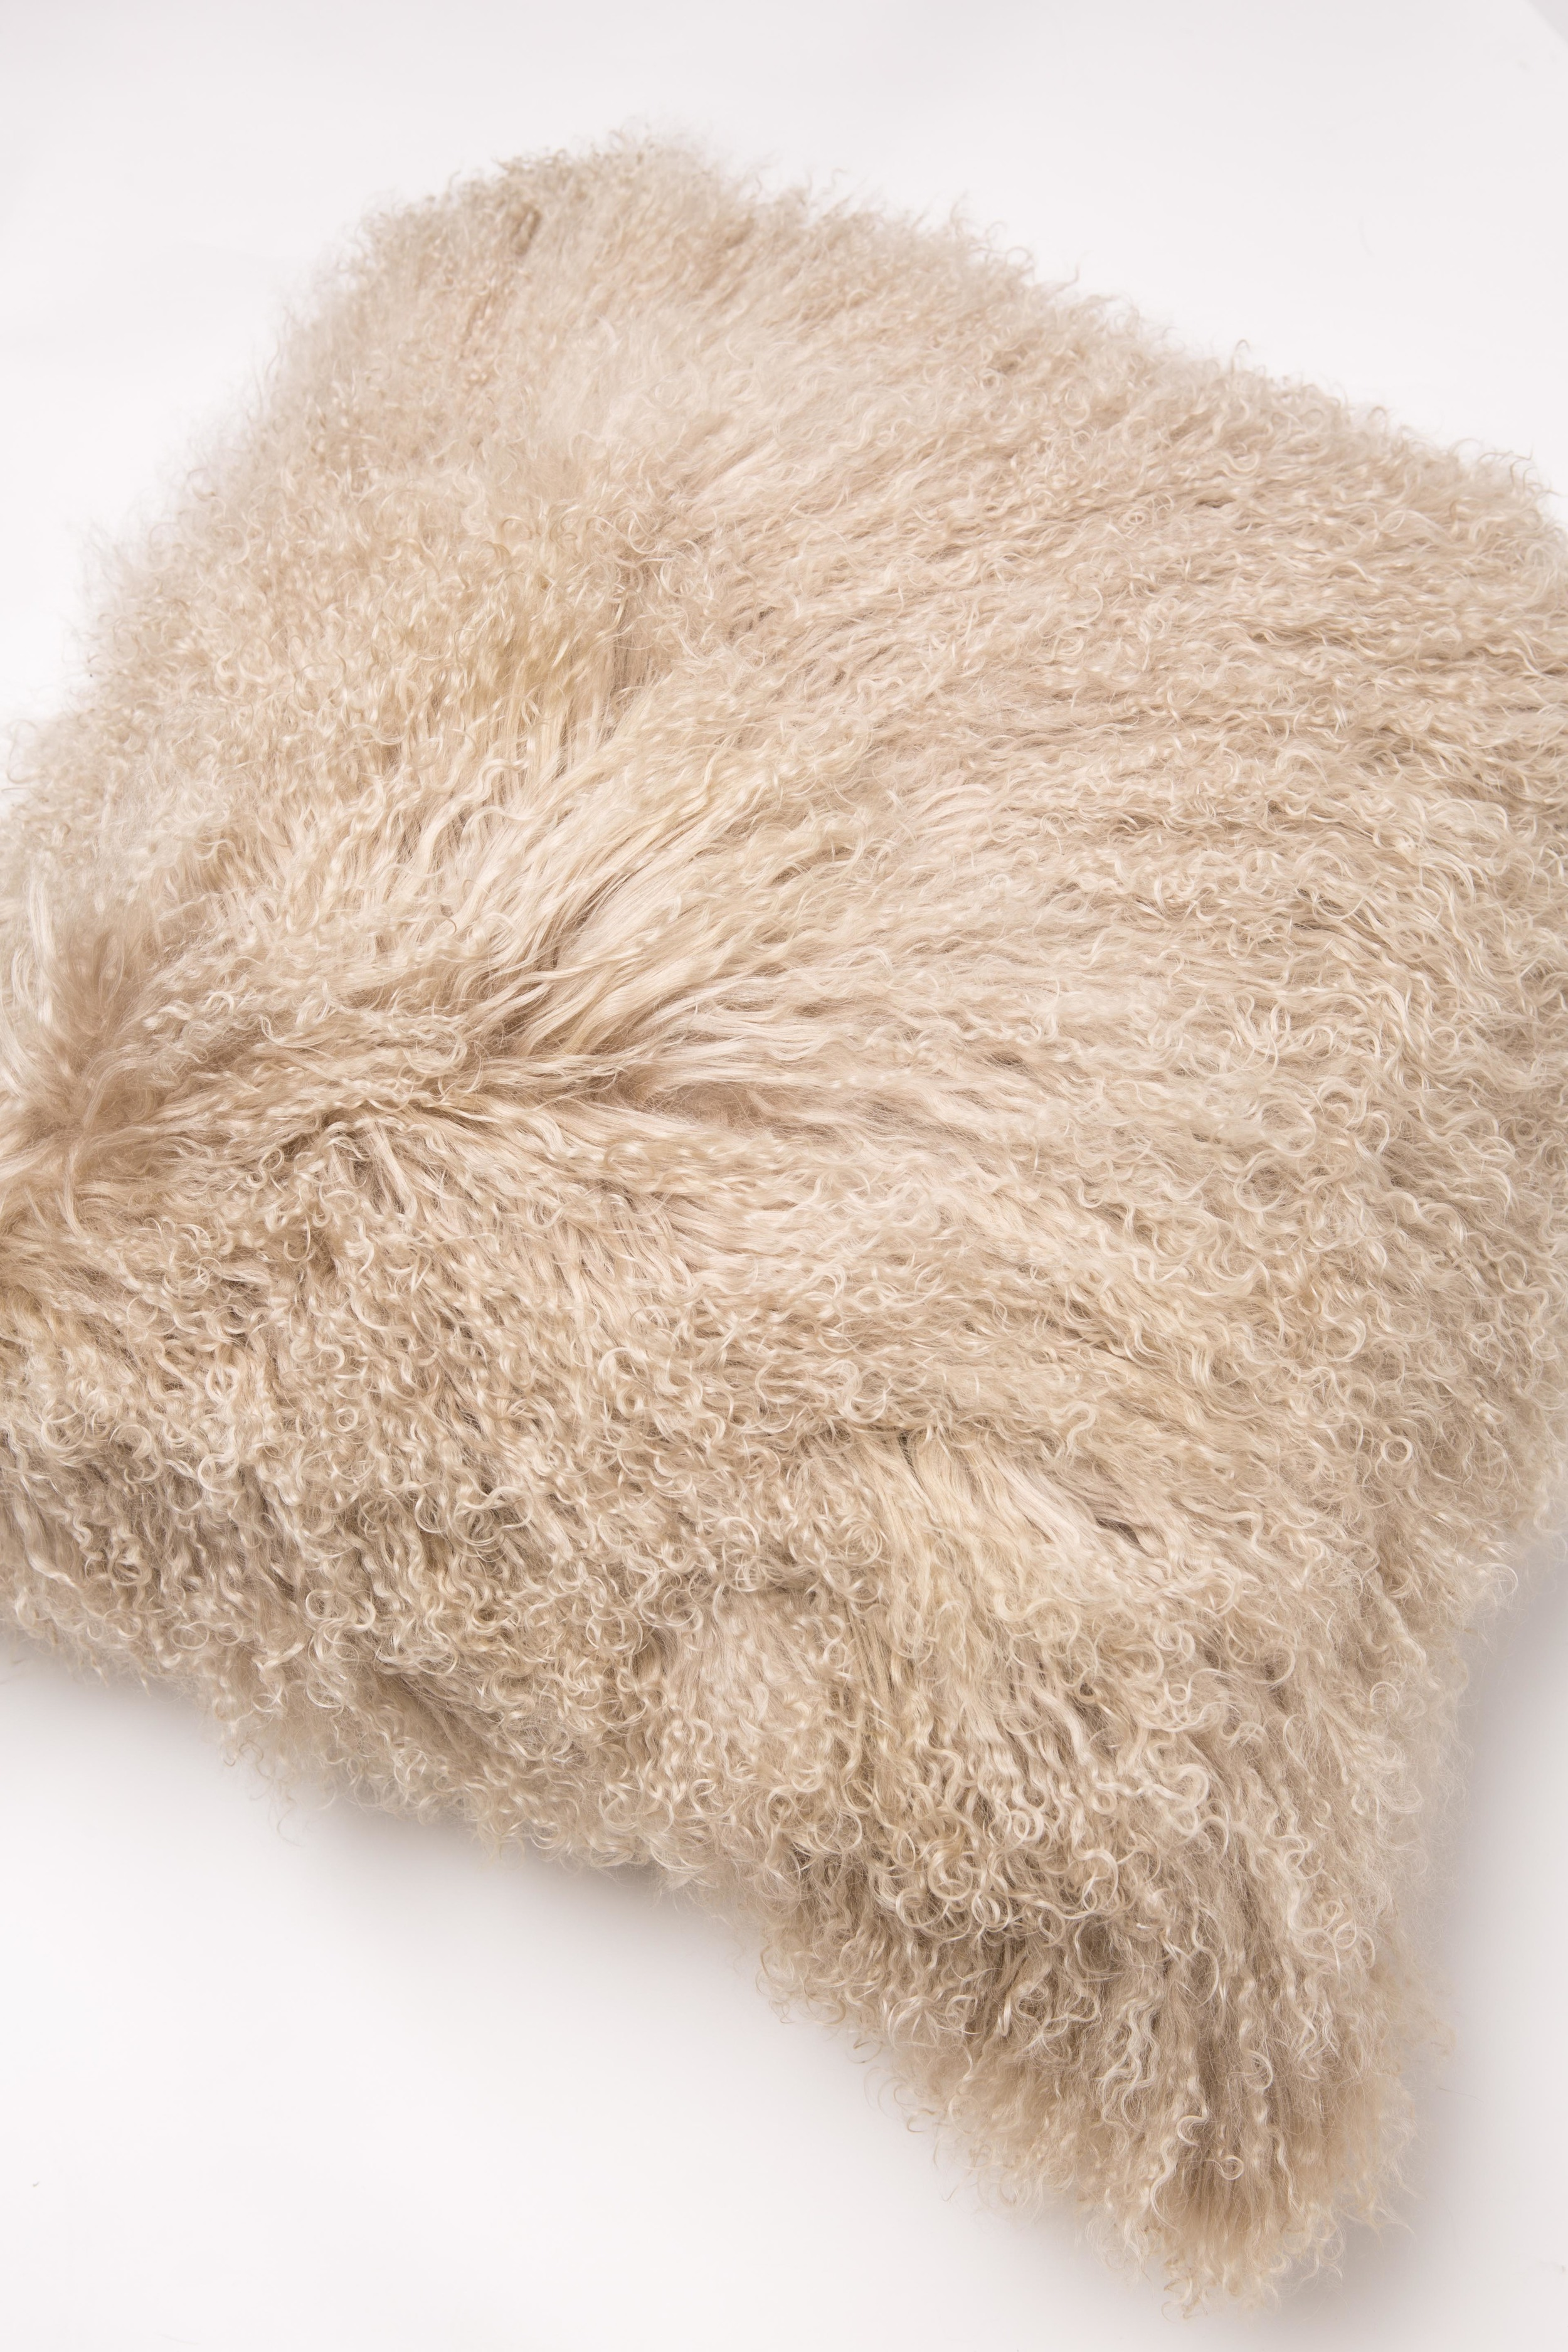 20x20 Smoke Gray Mongolian Curly DOUBLE SIDED Lamb Real Fur Pillow w//Insert